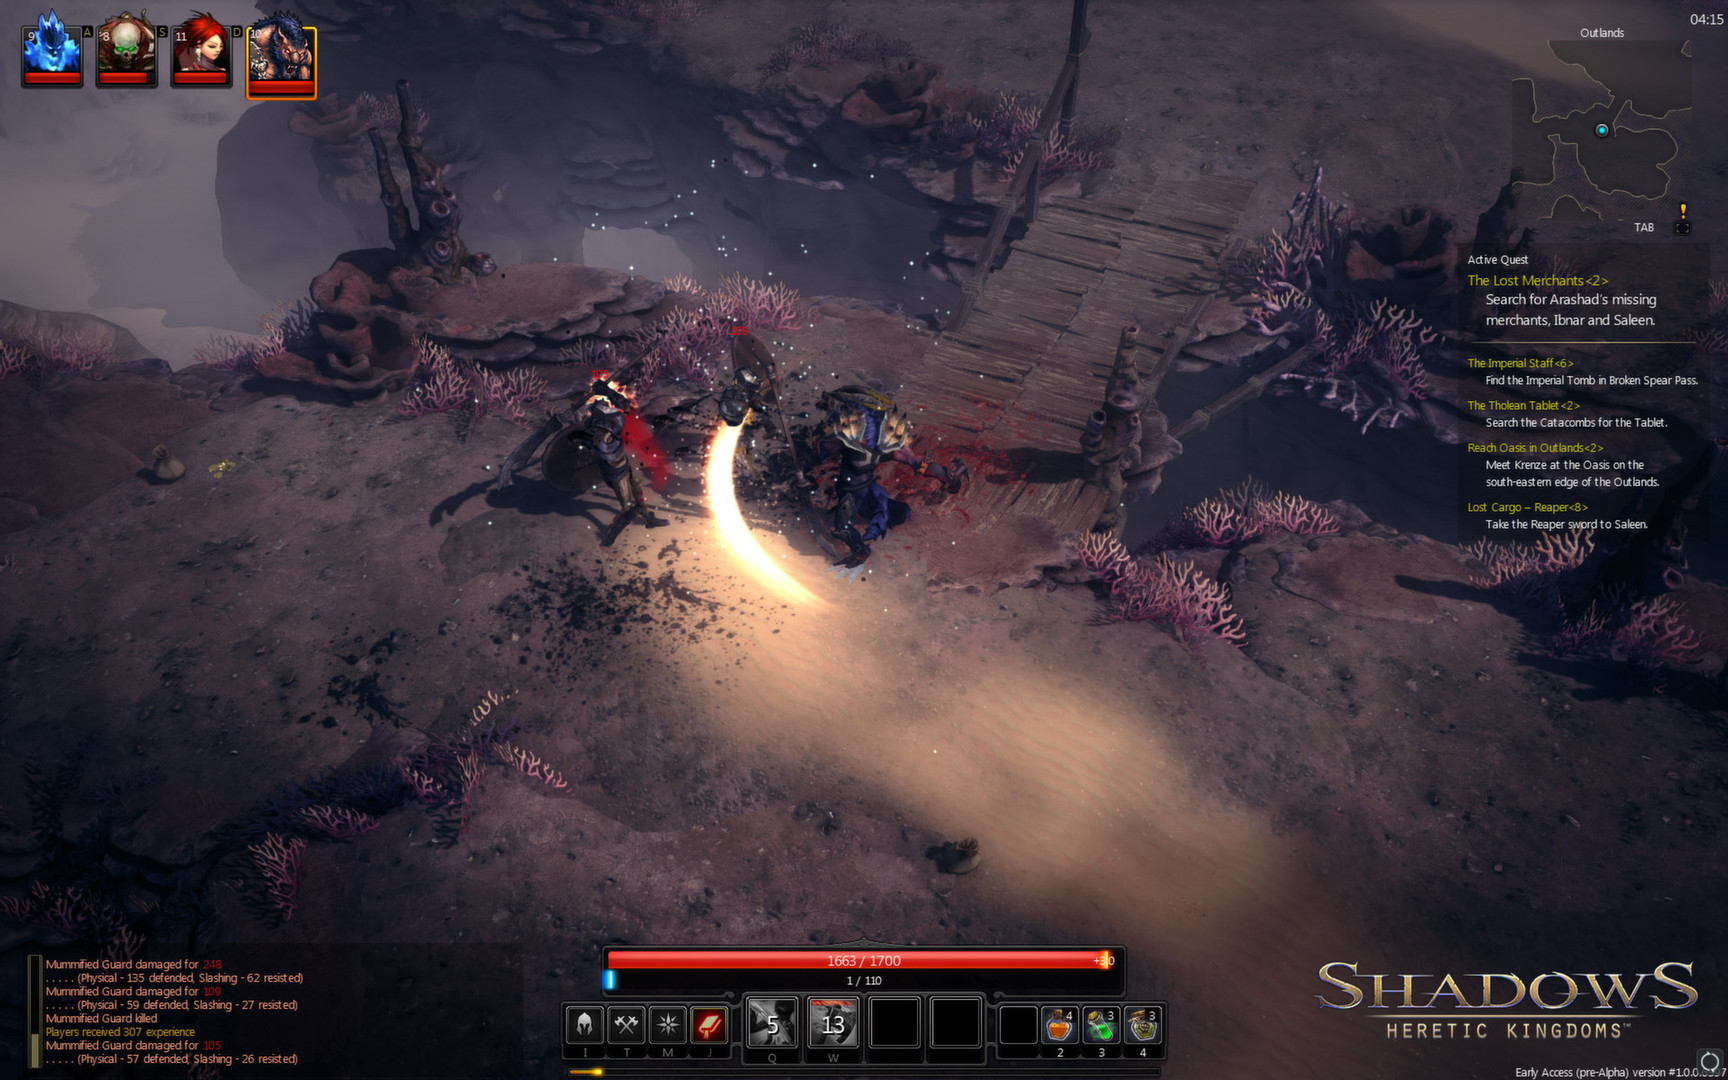 Shadows: Heretic Kingdoms screenshot 2